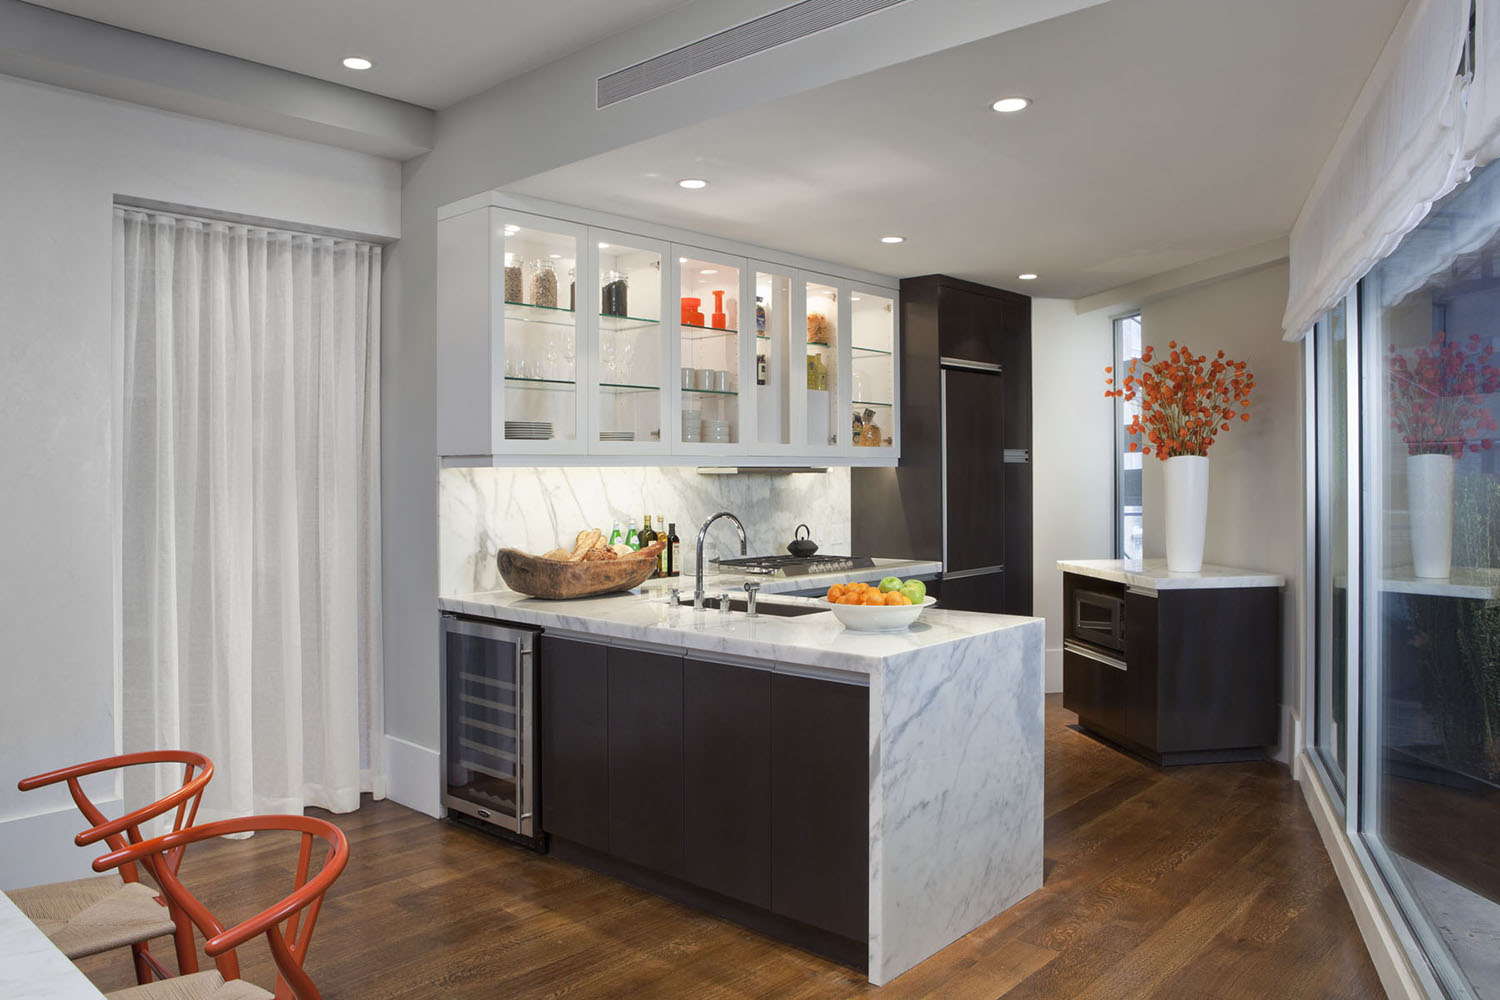 Park Avenue - Small kitchen design ideas